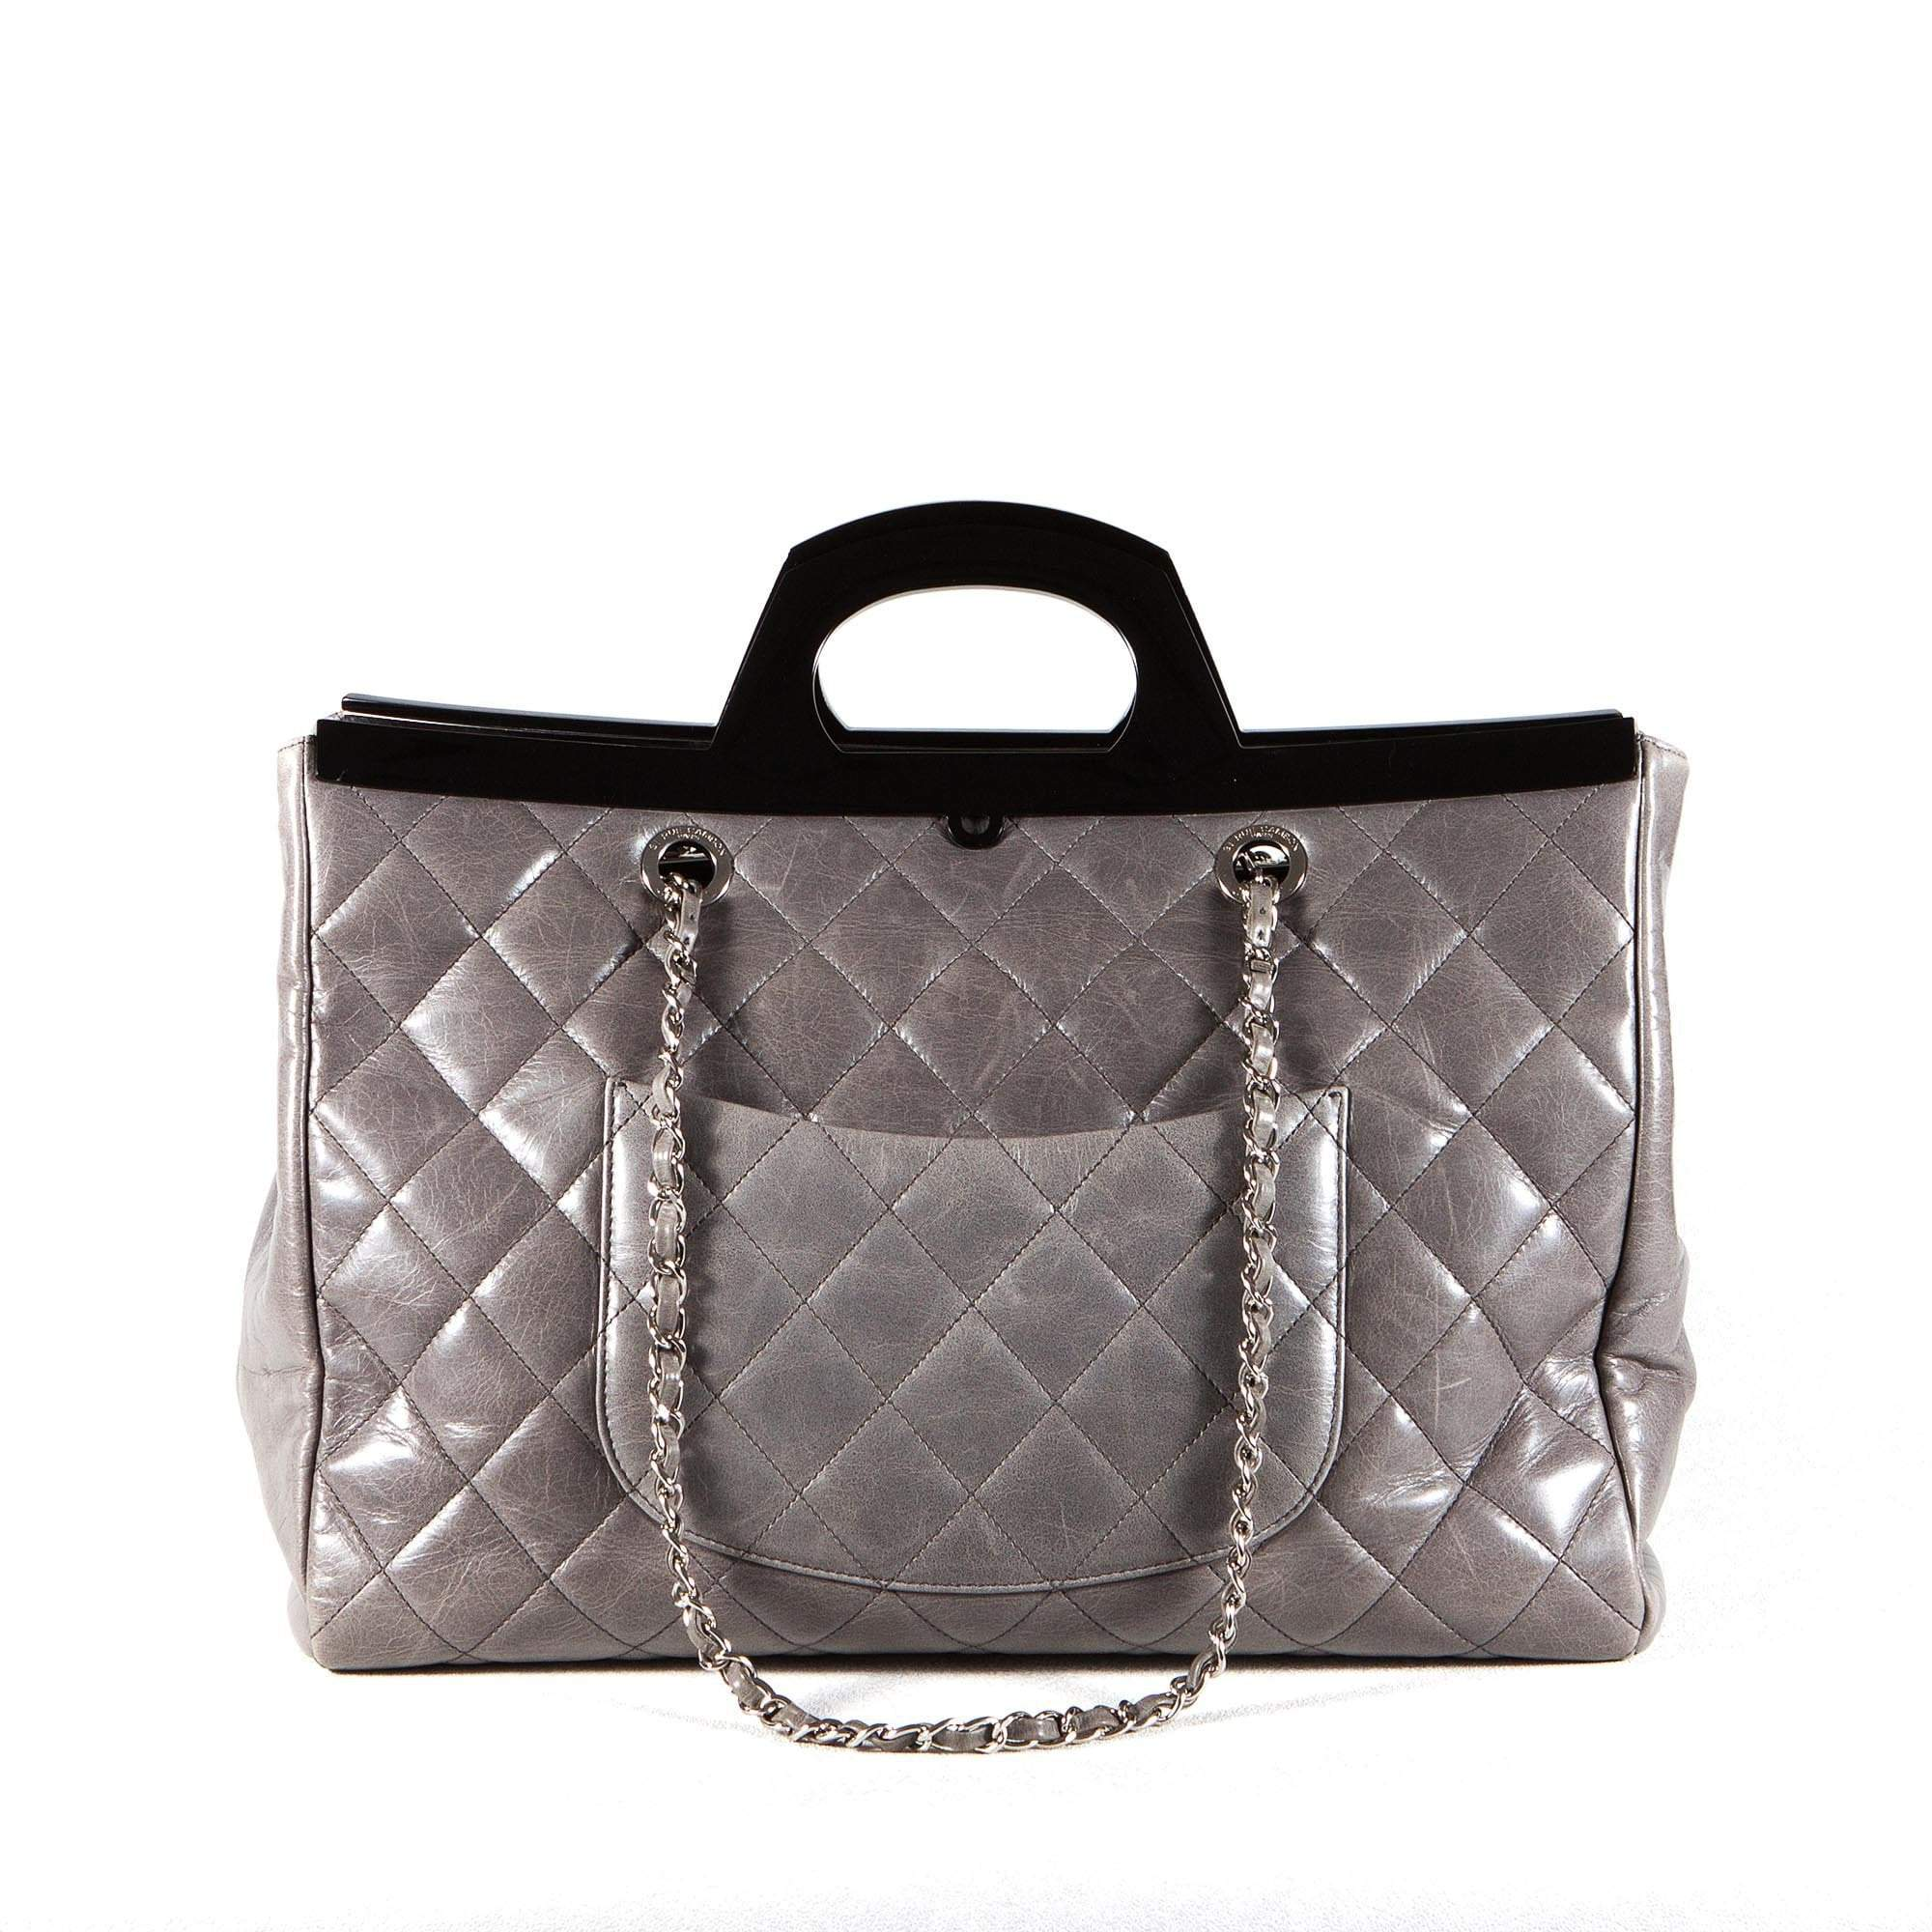 Chanel Large Quilted Top Handle Bag